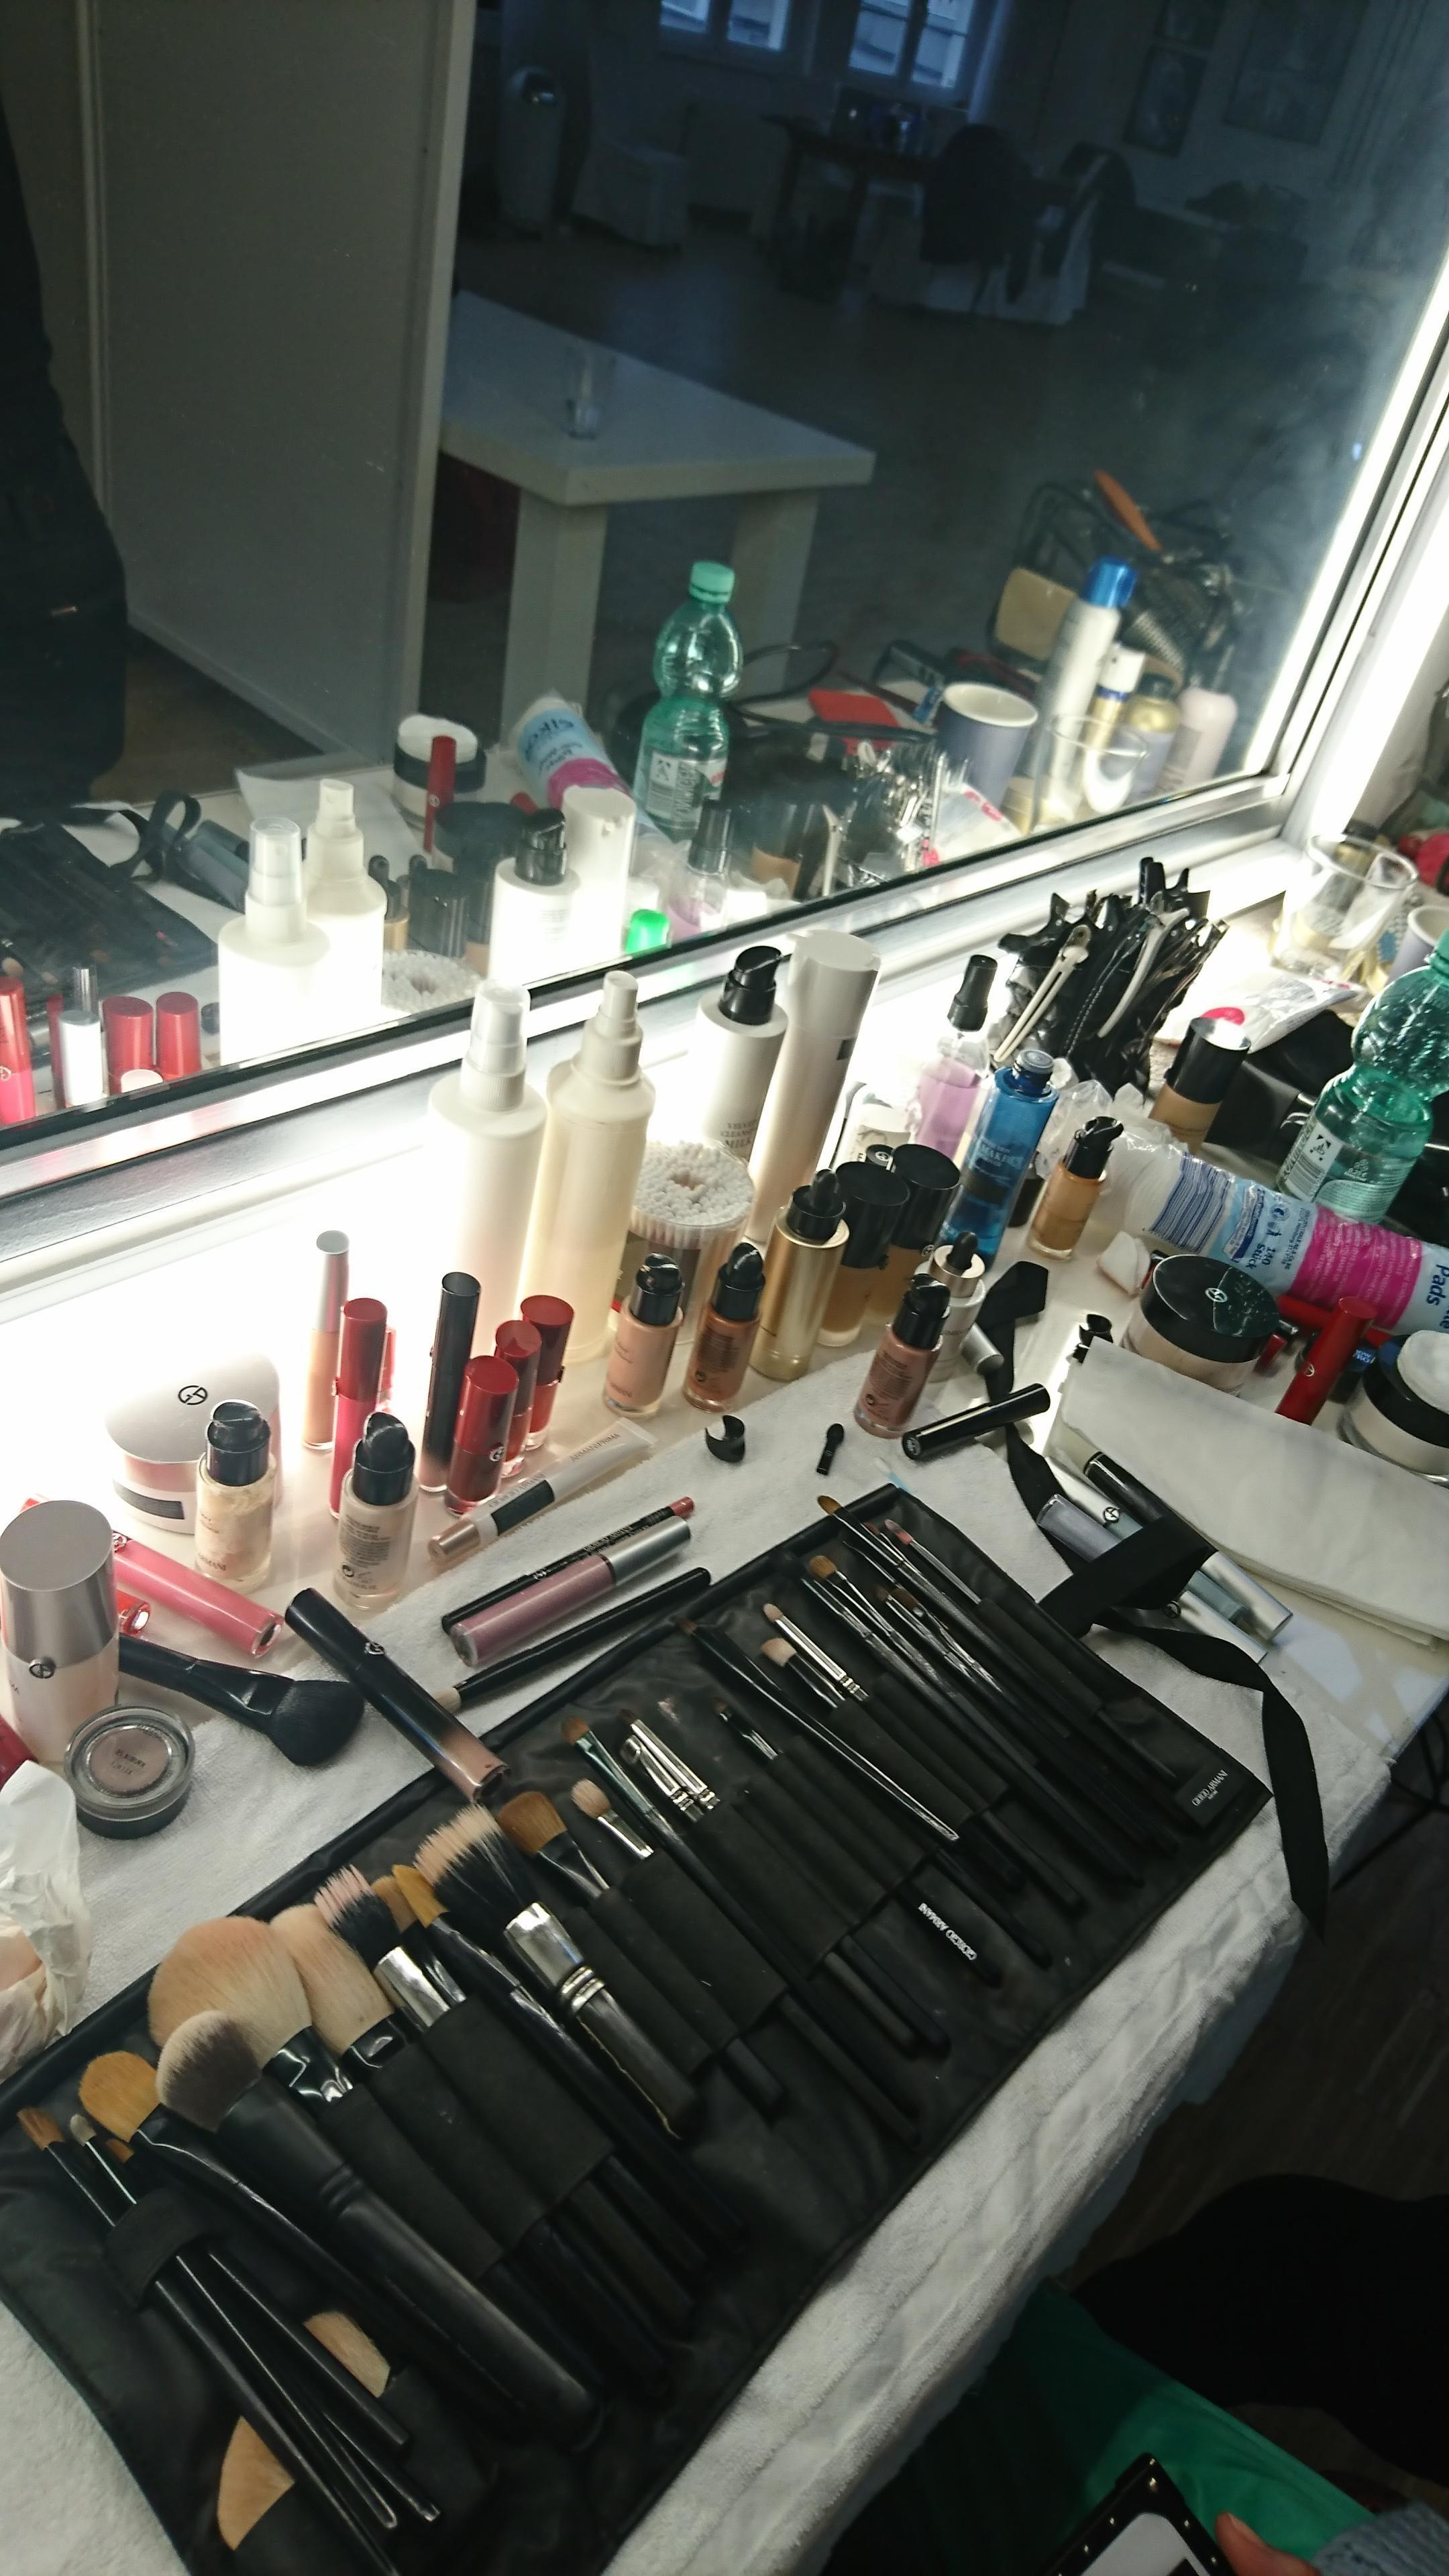 Der Arbeitsplatz vom Visagisten bei unserem Make-up-Shooting #makeup #beauty #backstage #armanibeauty #couchliebt